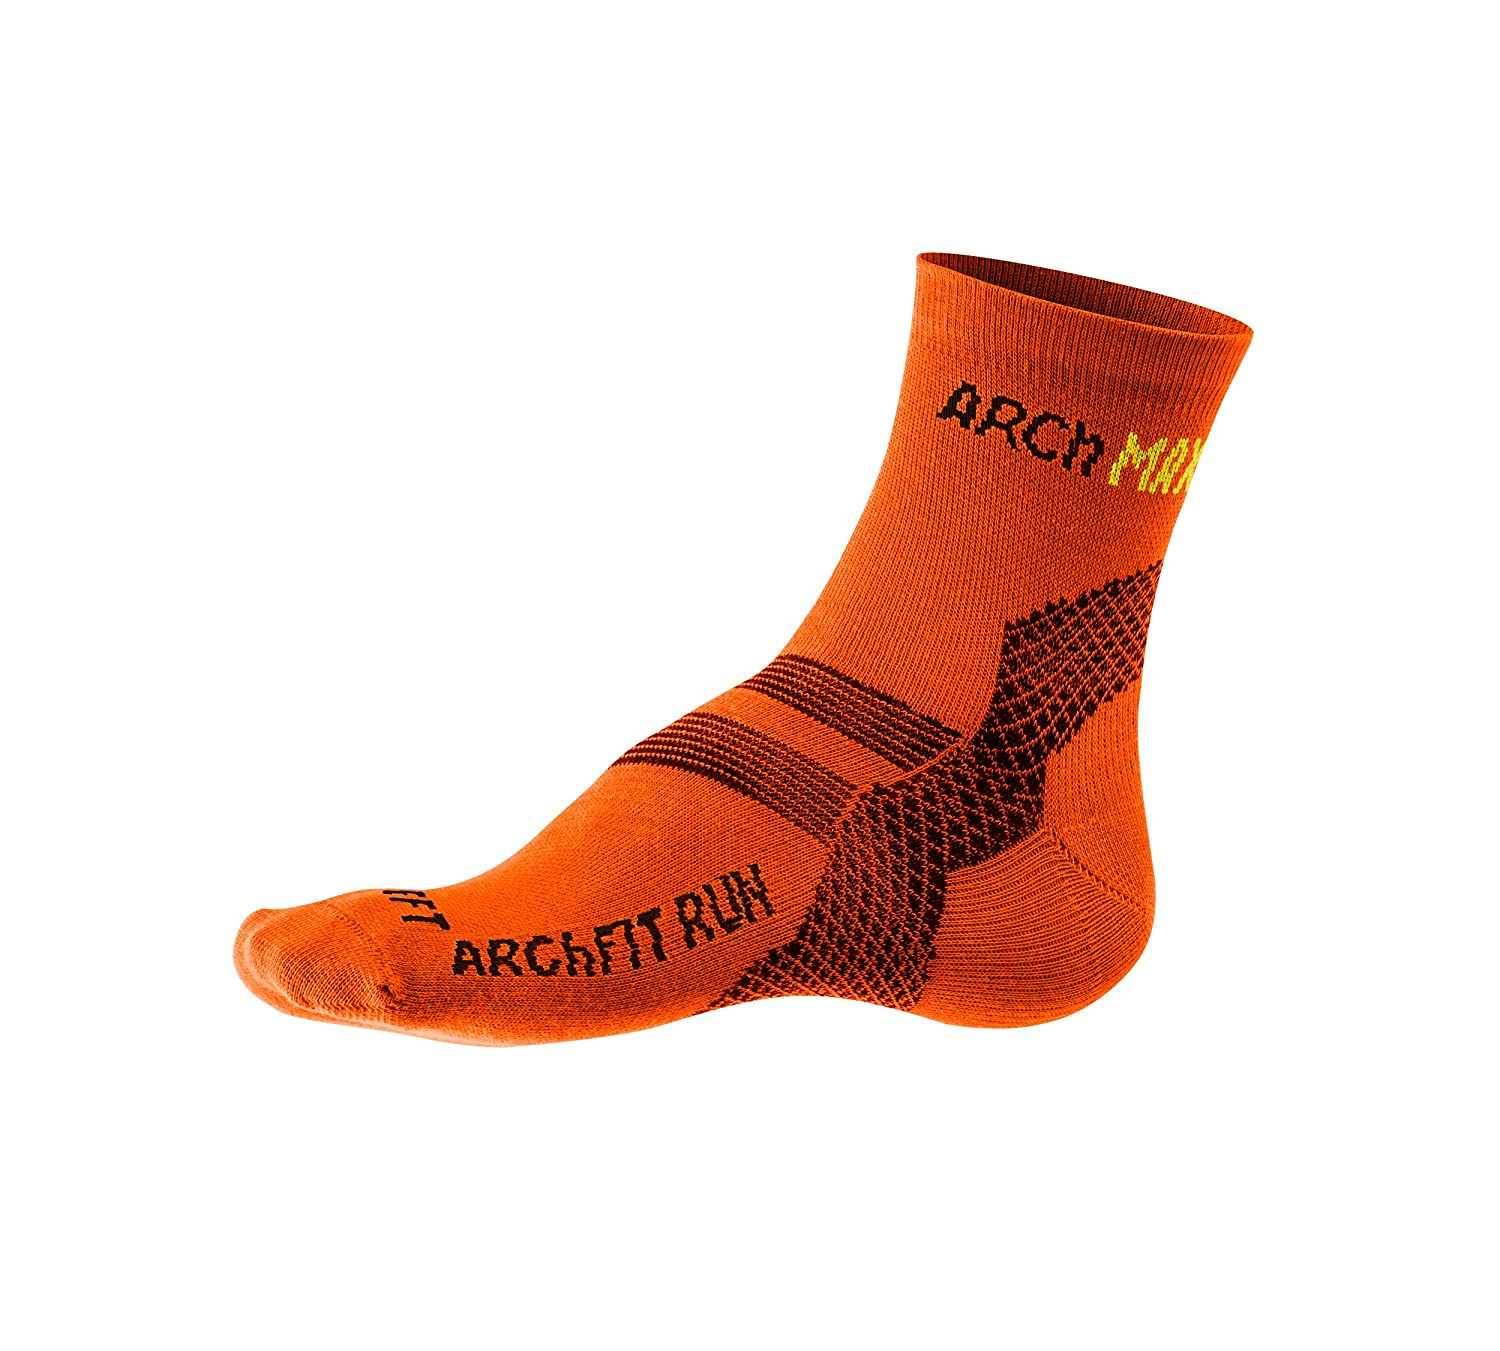 Hombre Arch Max Archfit Calcetines Deportivos